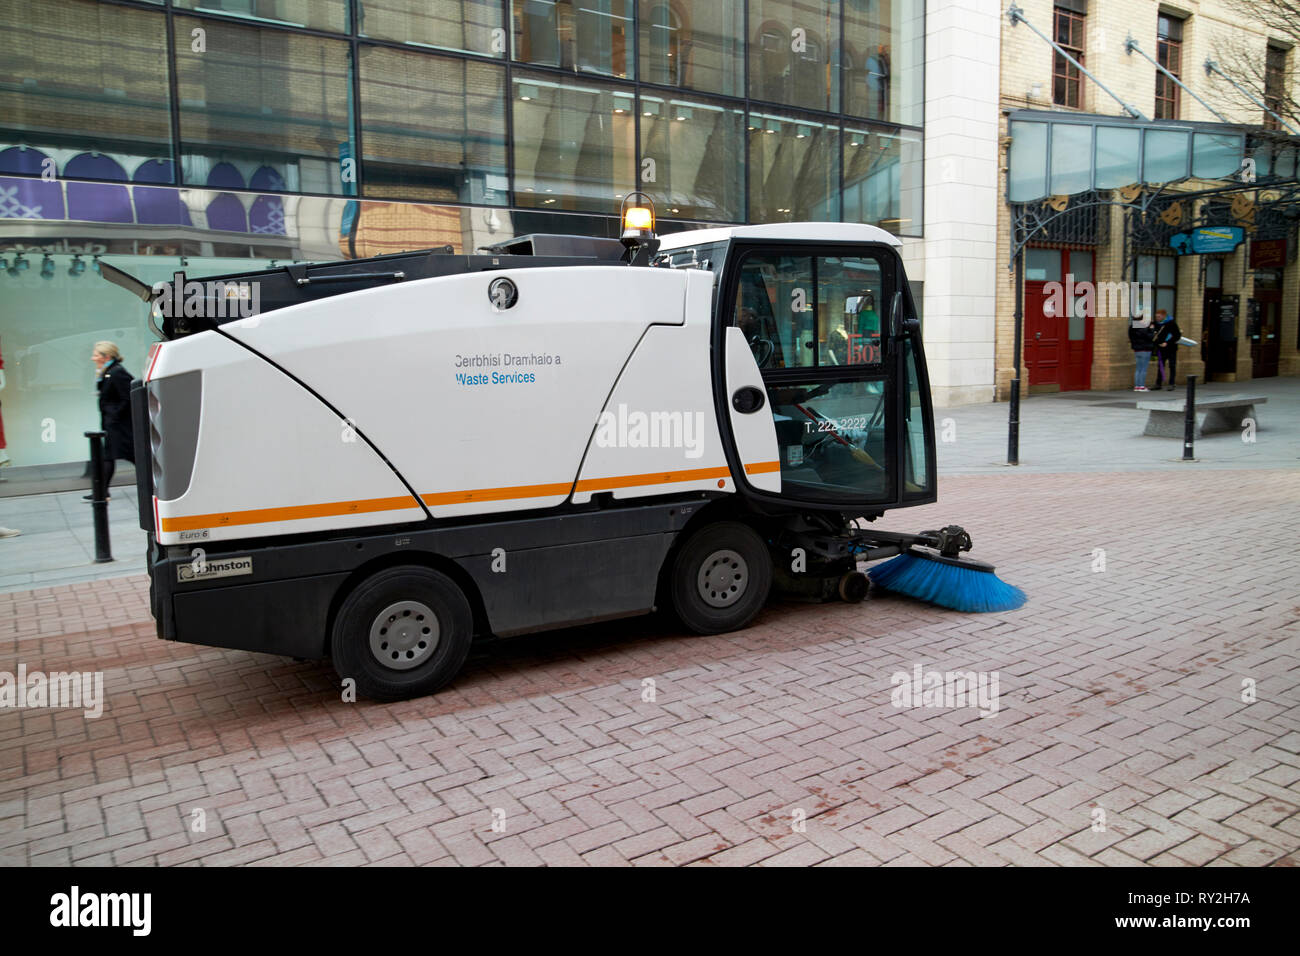 Dublin city council waste services street sweeper cleaning streets Dublin Republic of Ireland Europe Stock Photo